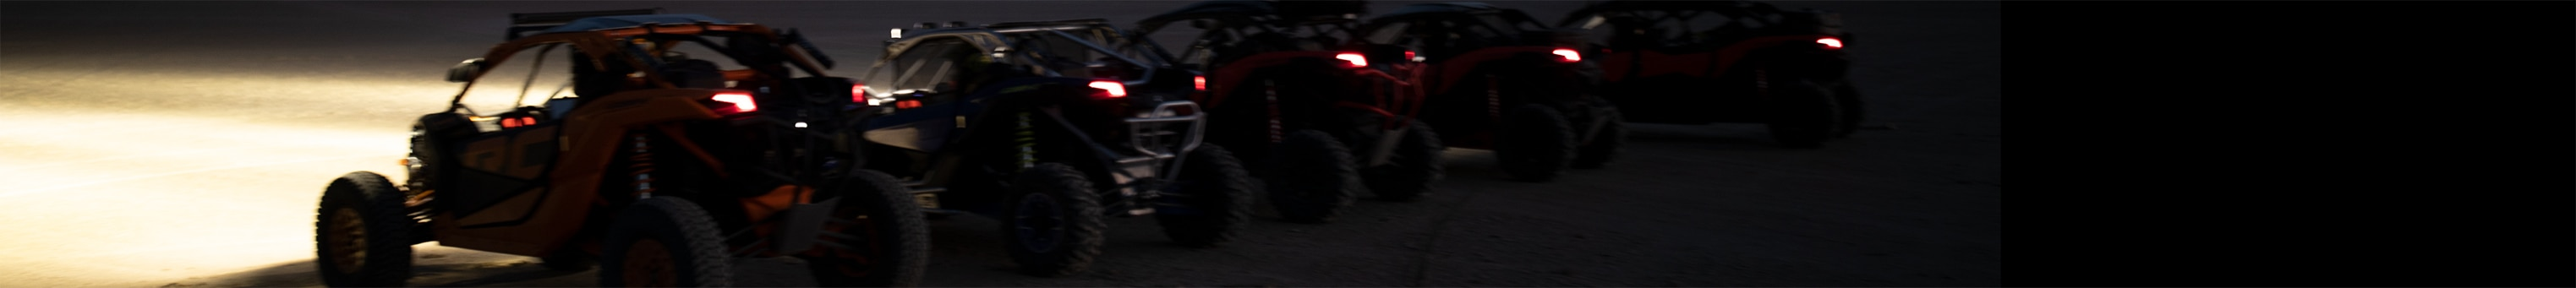 Rear shots of Maverick SSV driving in the night